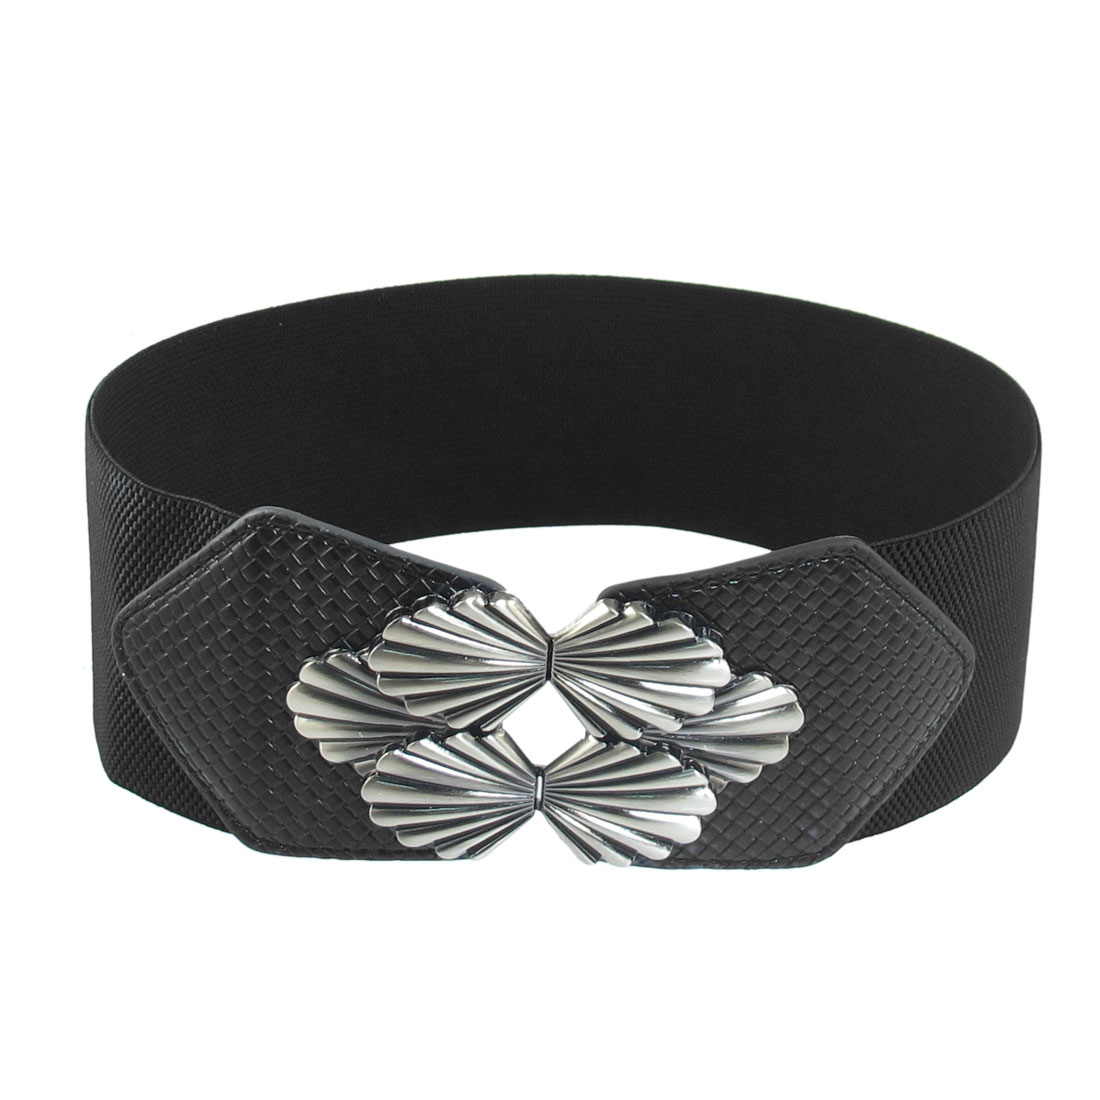 Ladies Women Metal Interlocking Buckle Black 7.5cm Width Stretchy Belt